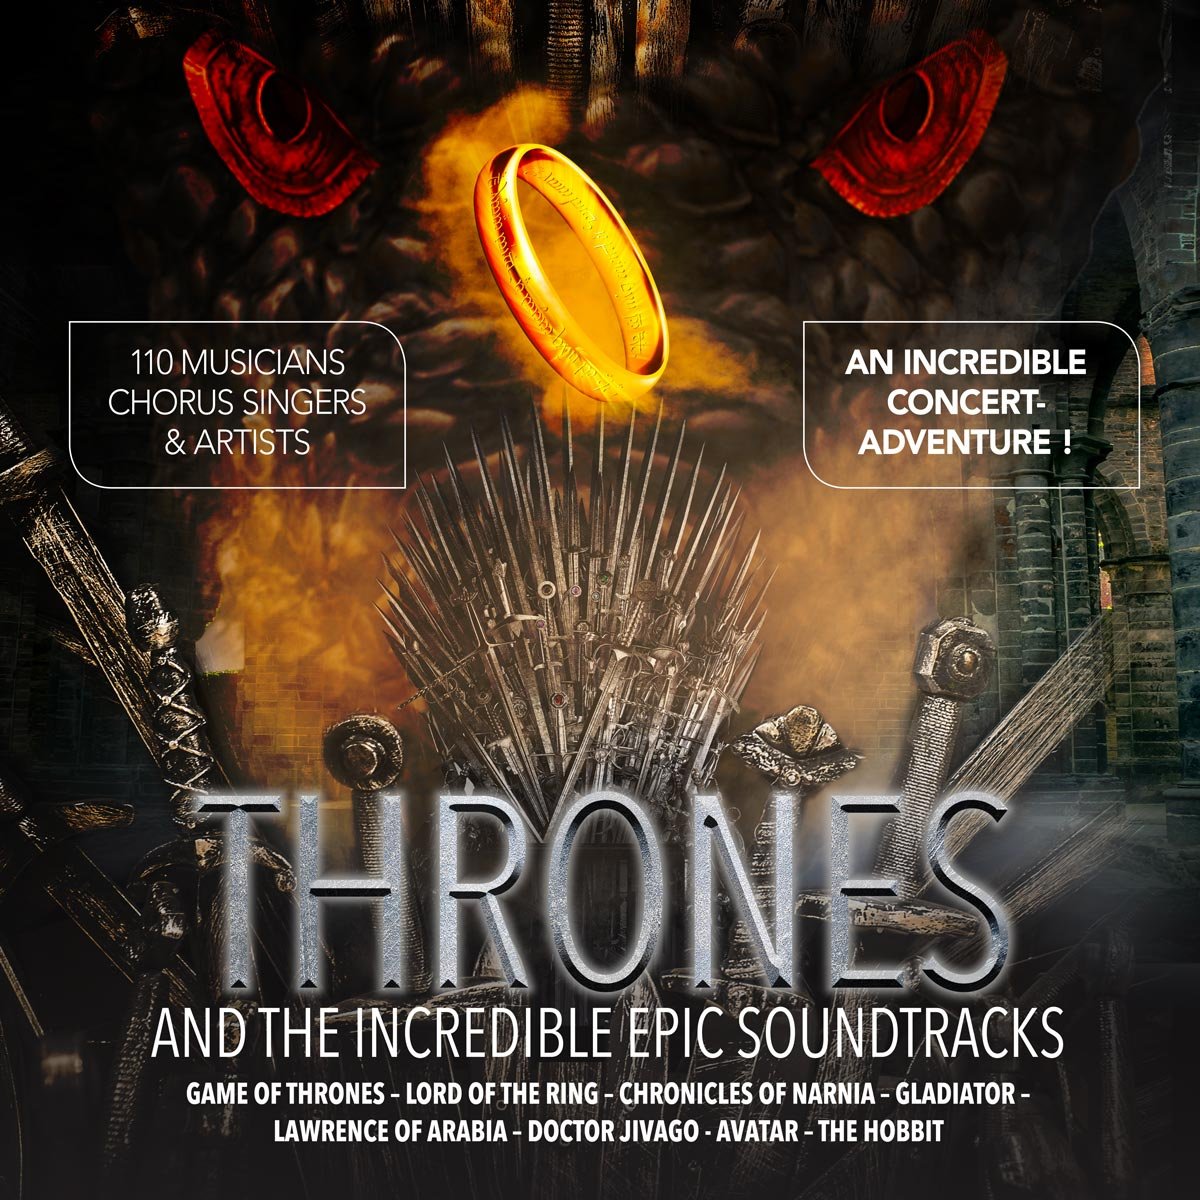 Thrones, and the incredible epic soundtracks